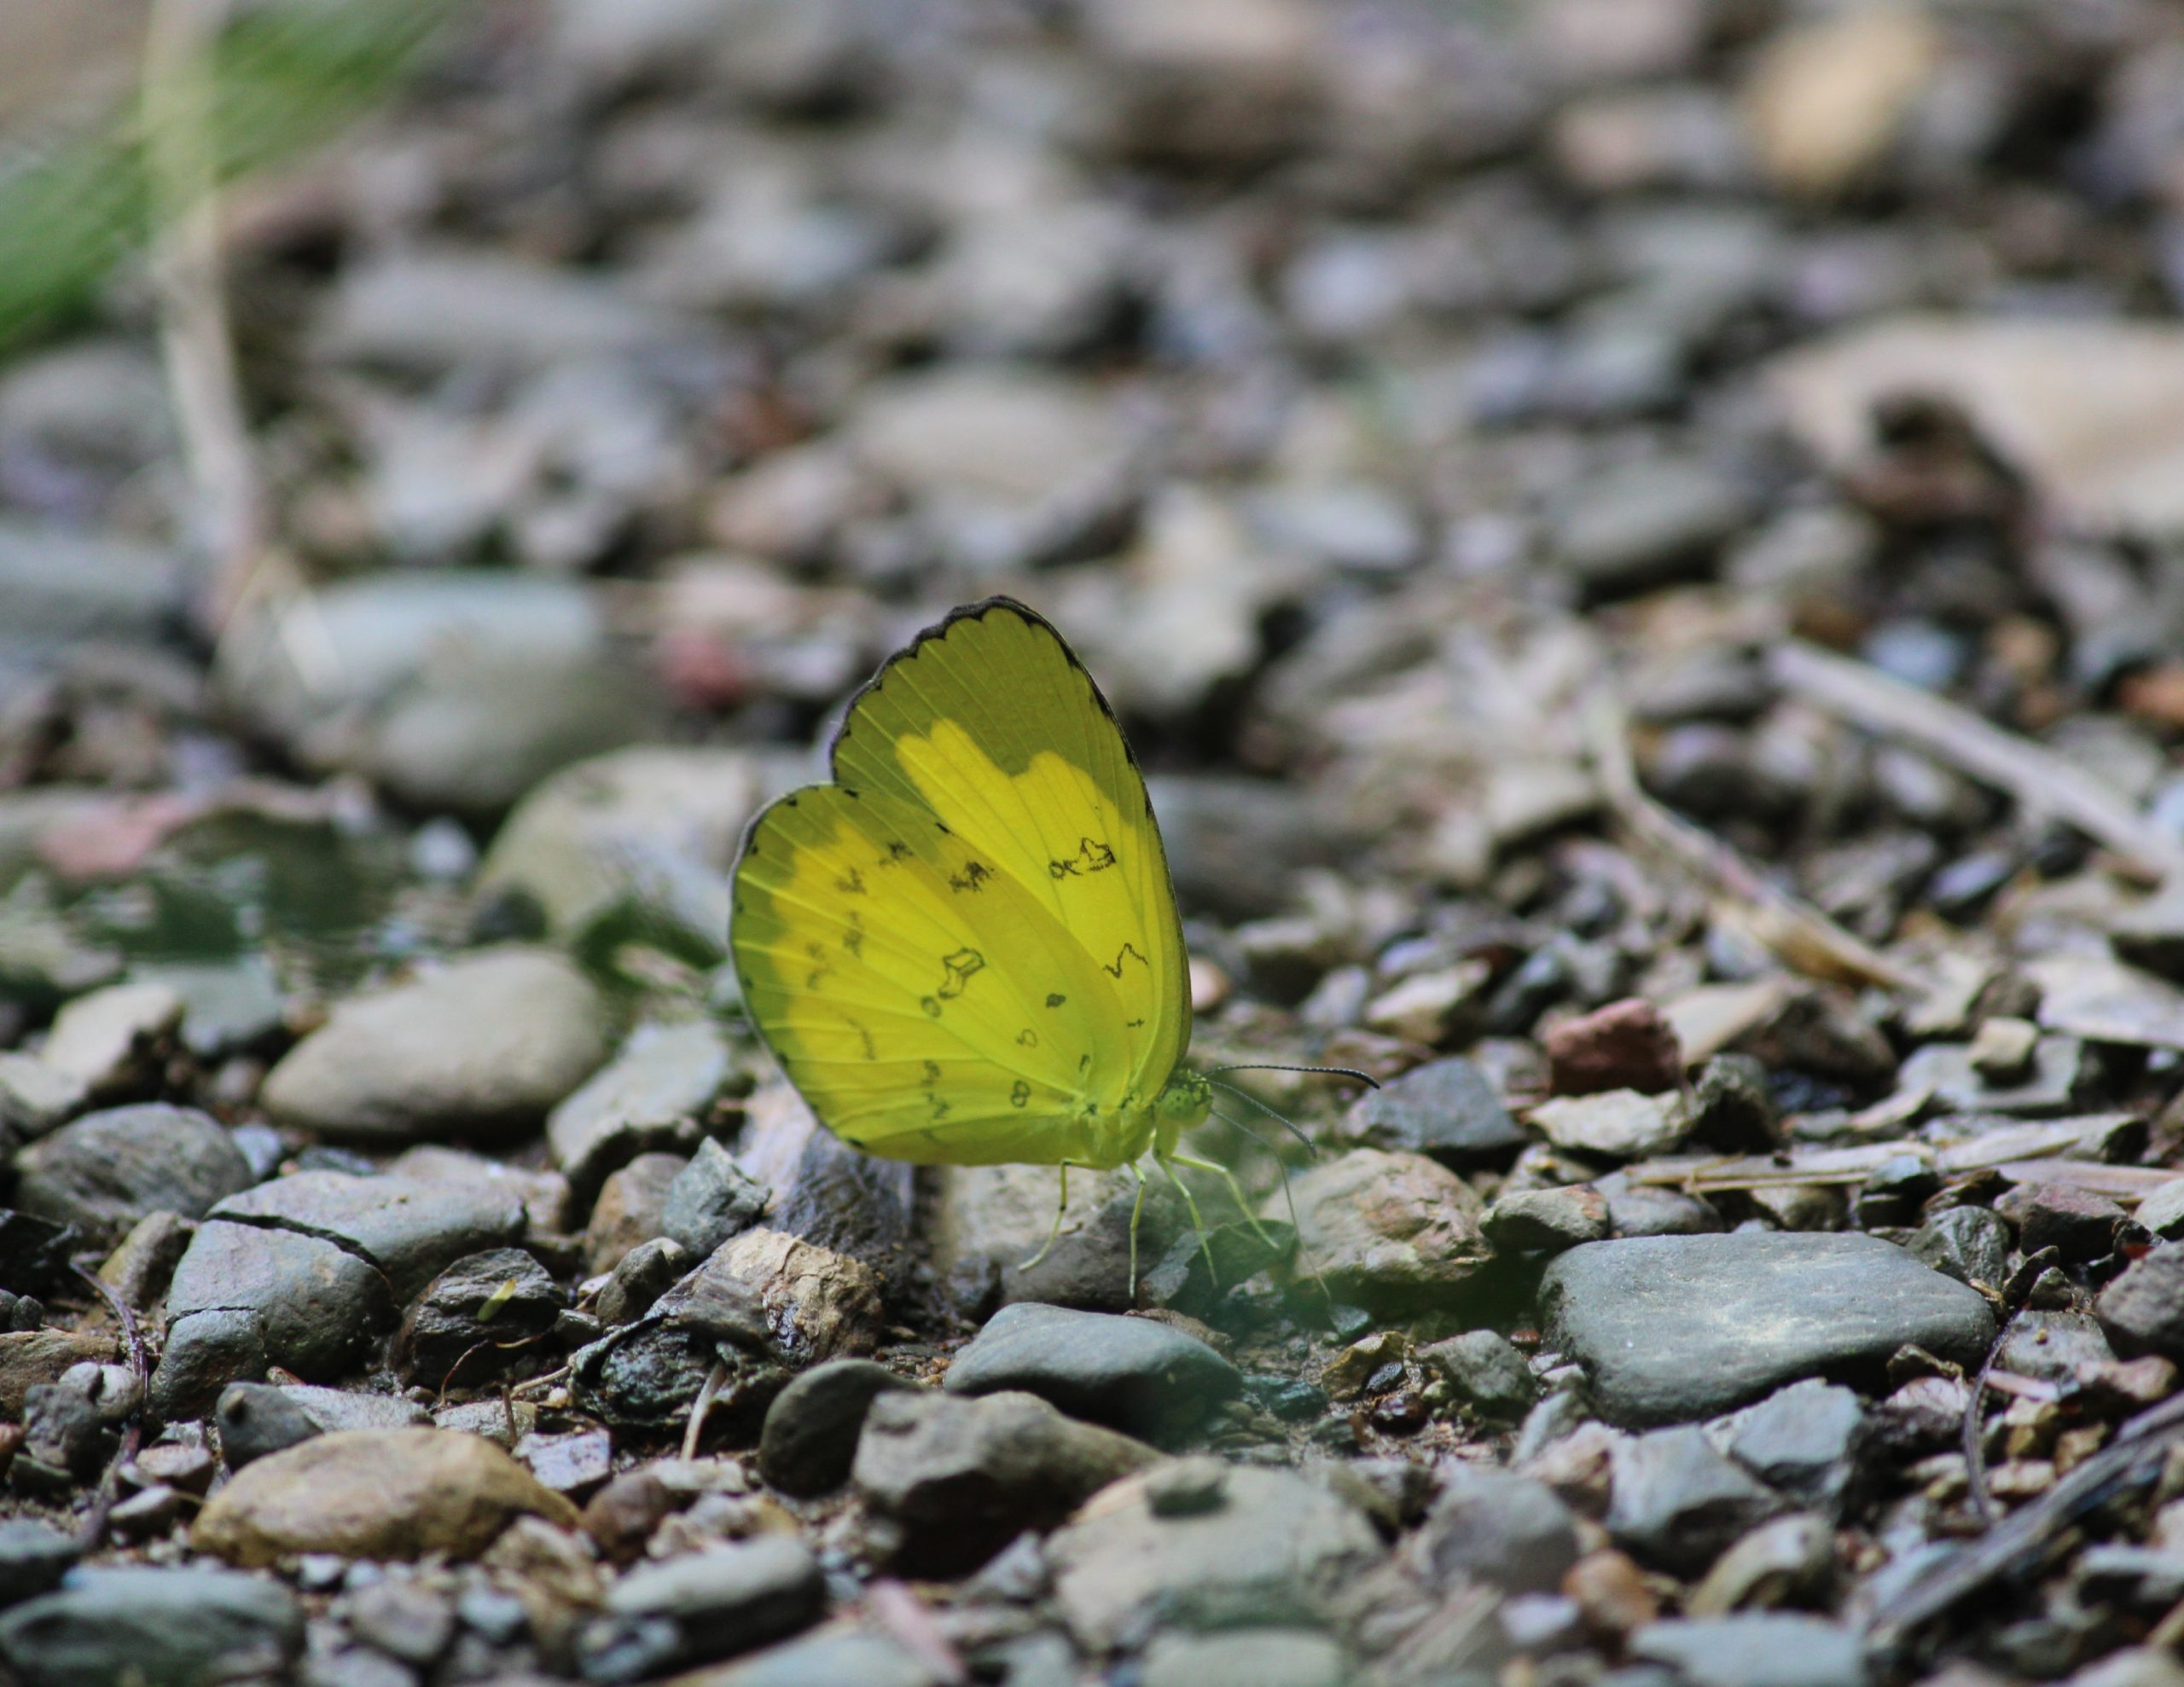 Clouded yellows Butterfly in the Ground on Focus